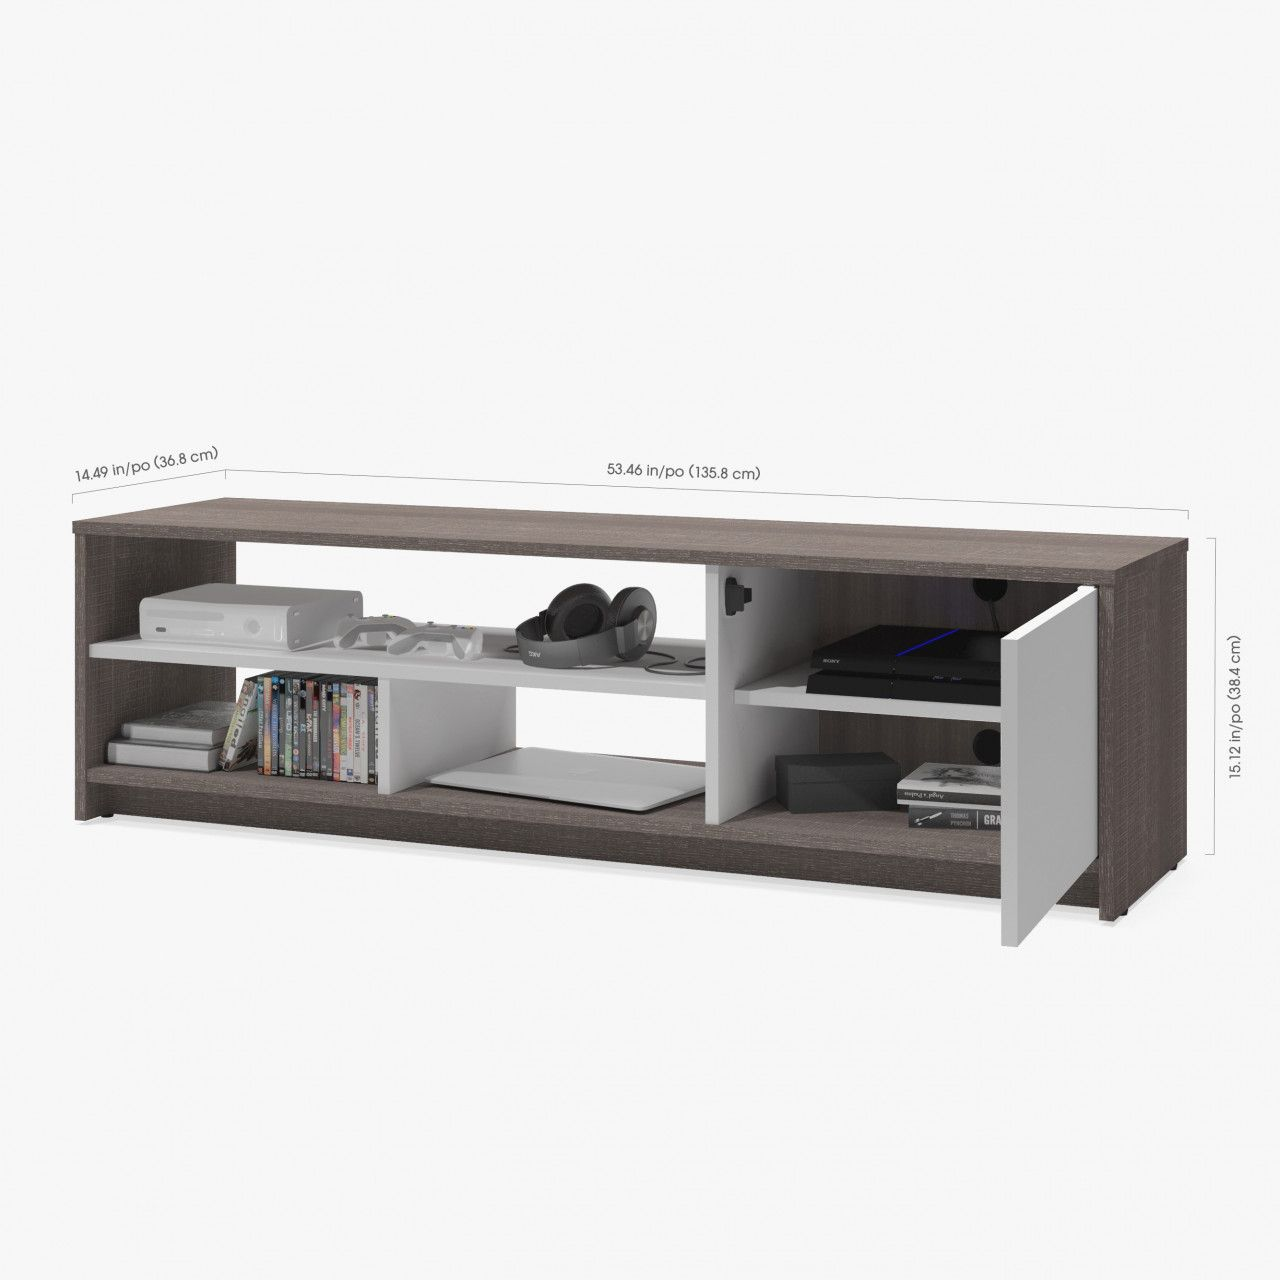 99 Inspirational 60 Inch Coffee Table 2019 Cool Coffee Tables Built In Wall Units Coffee Table With Storage